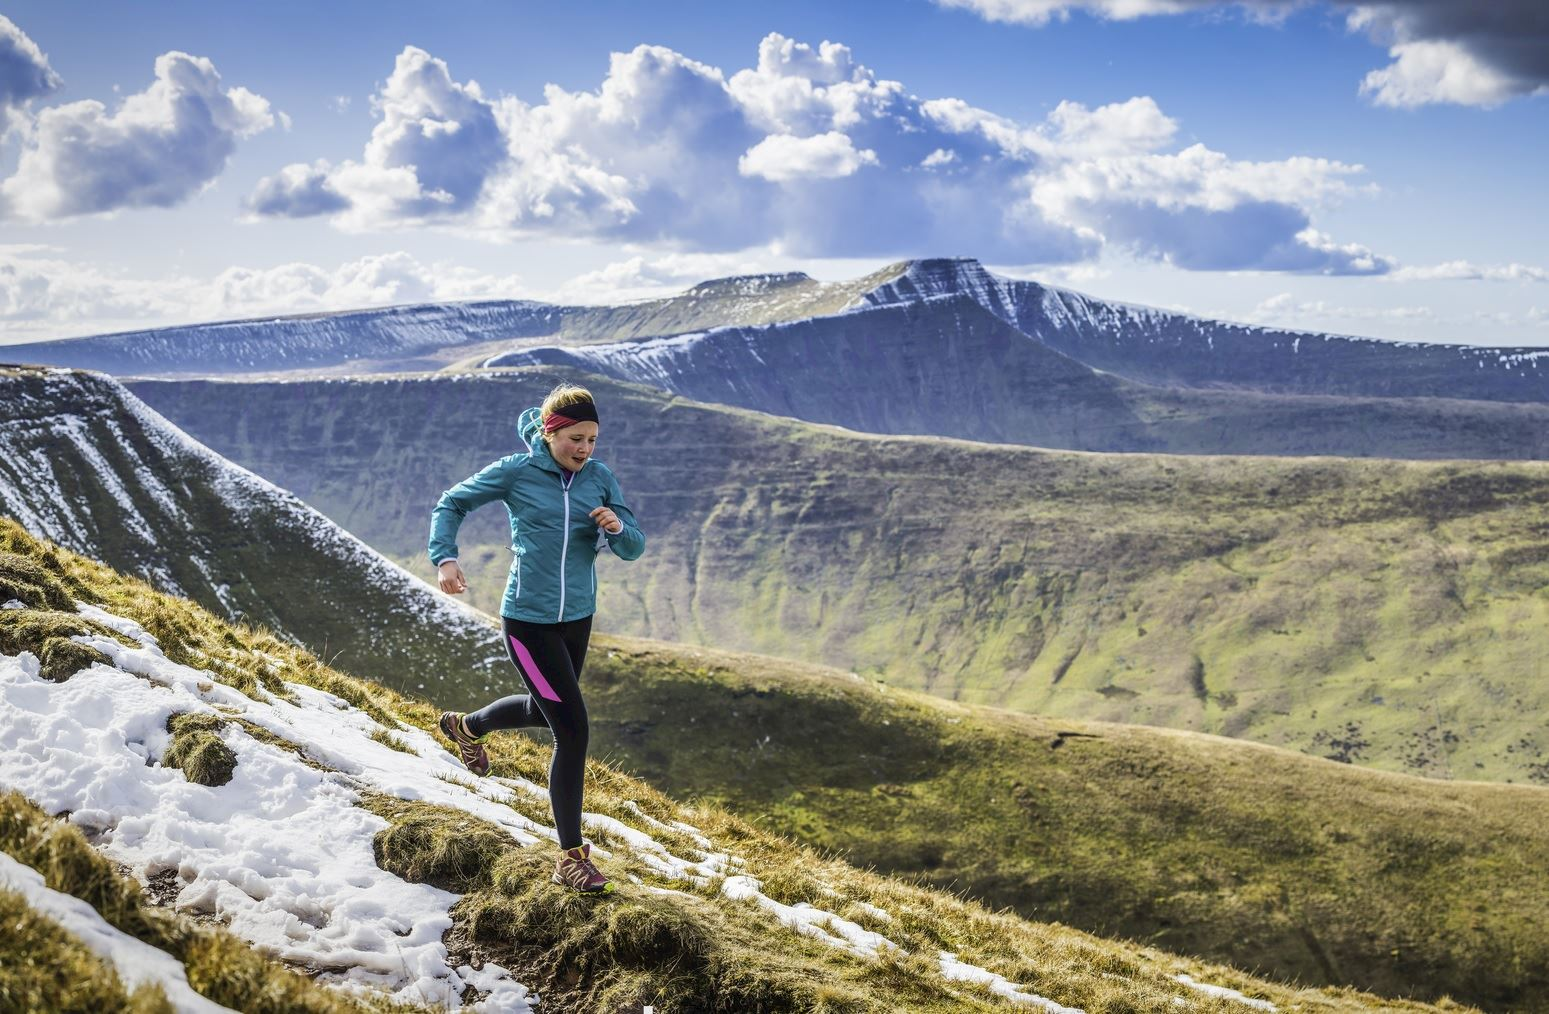 Running at Altitude: What are the Effects and How to Train for it?